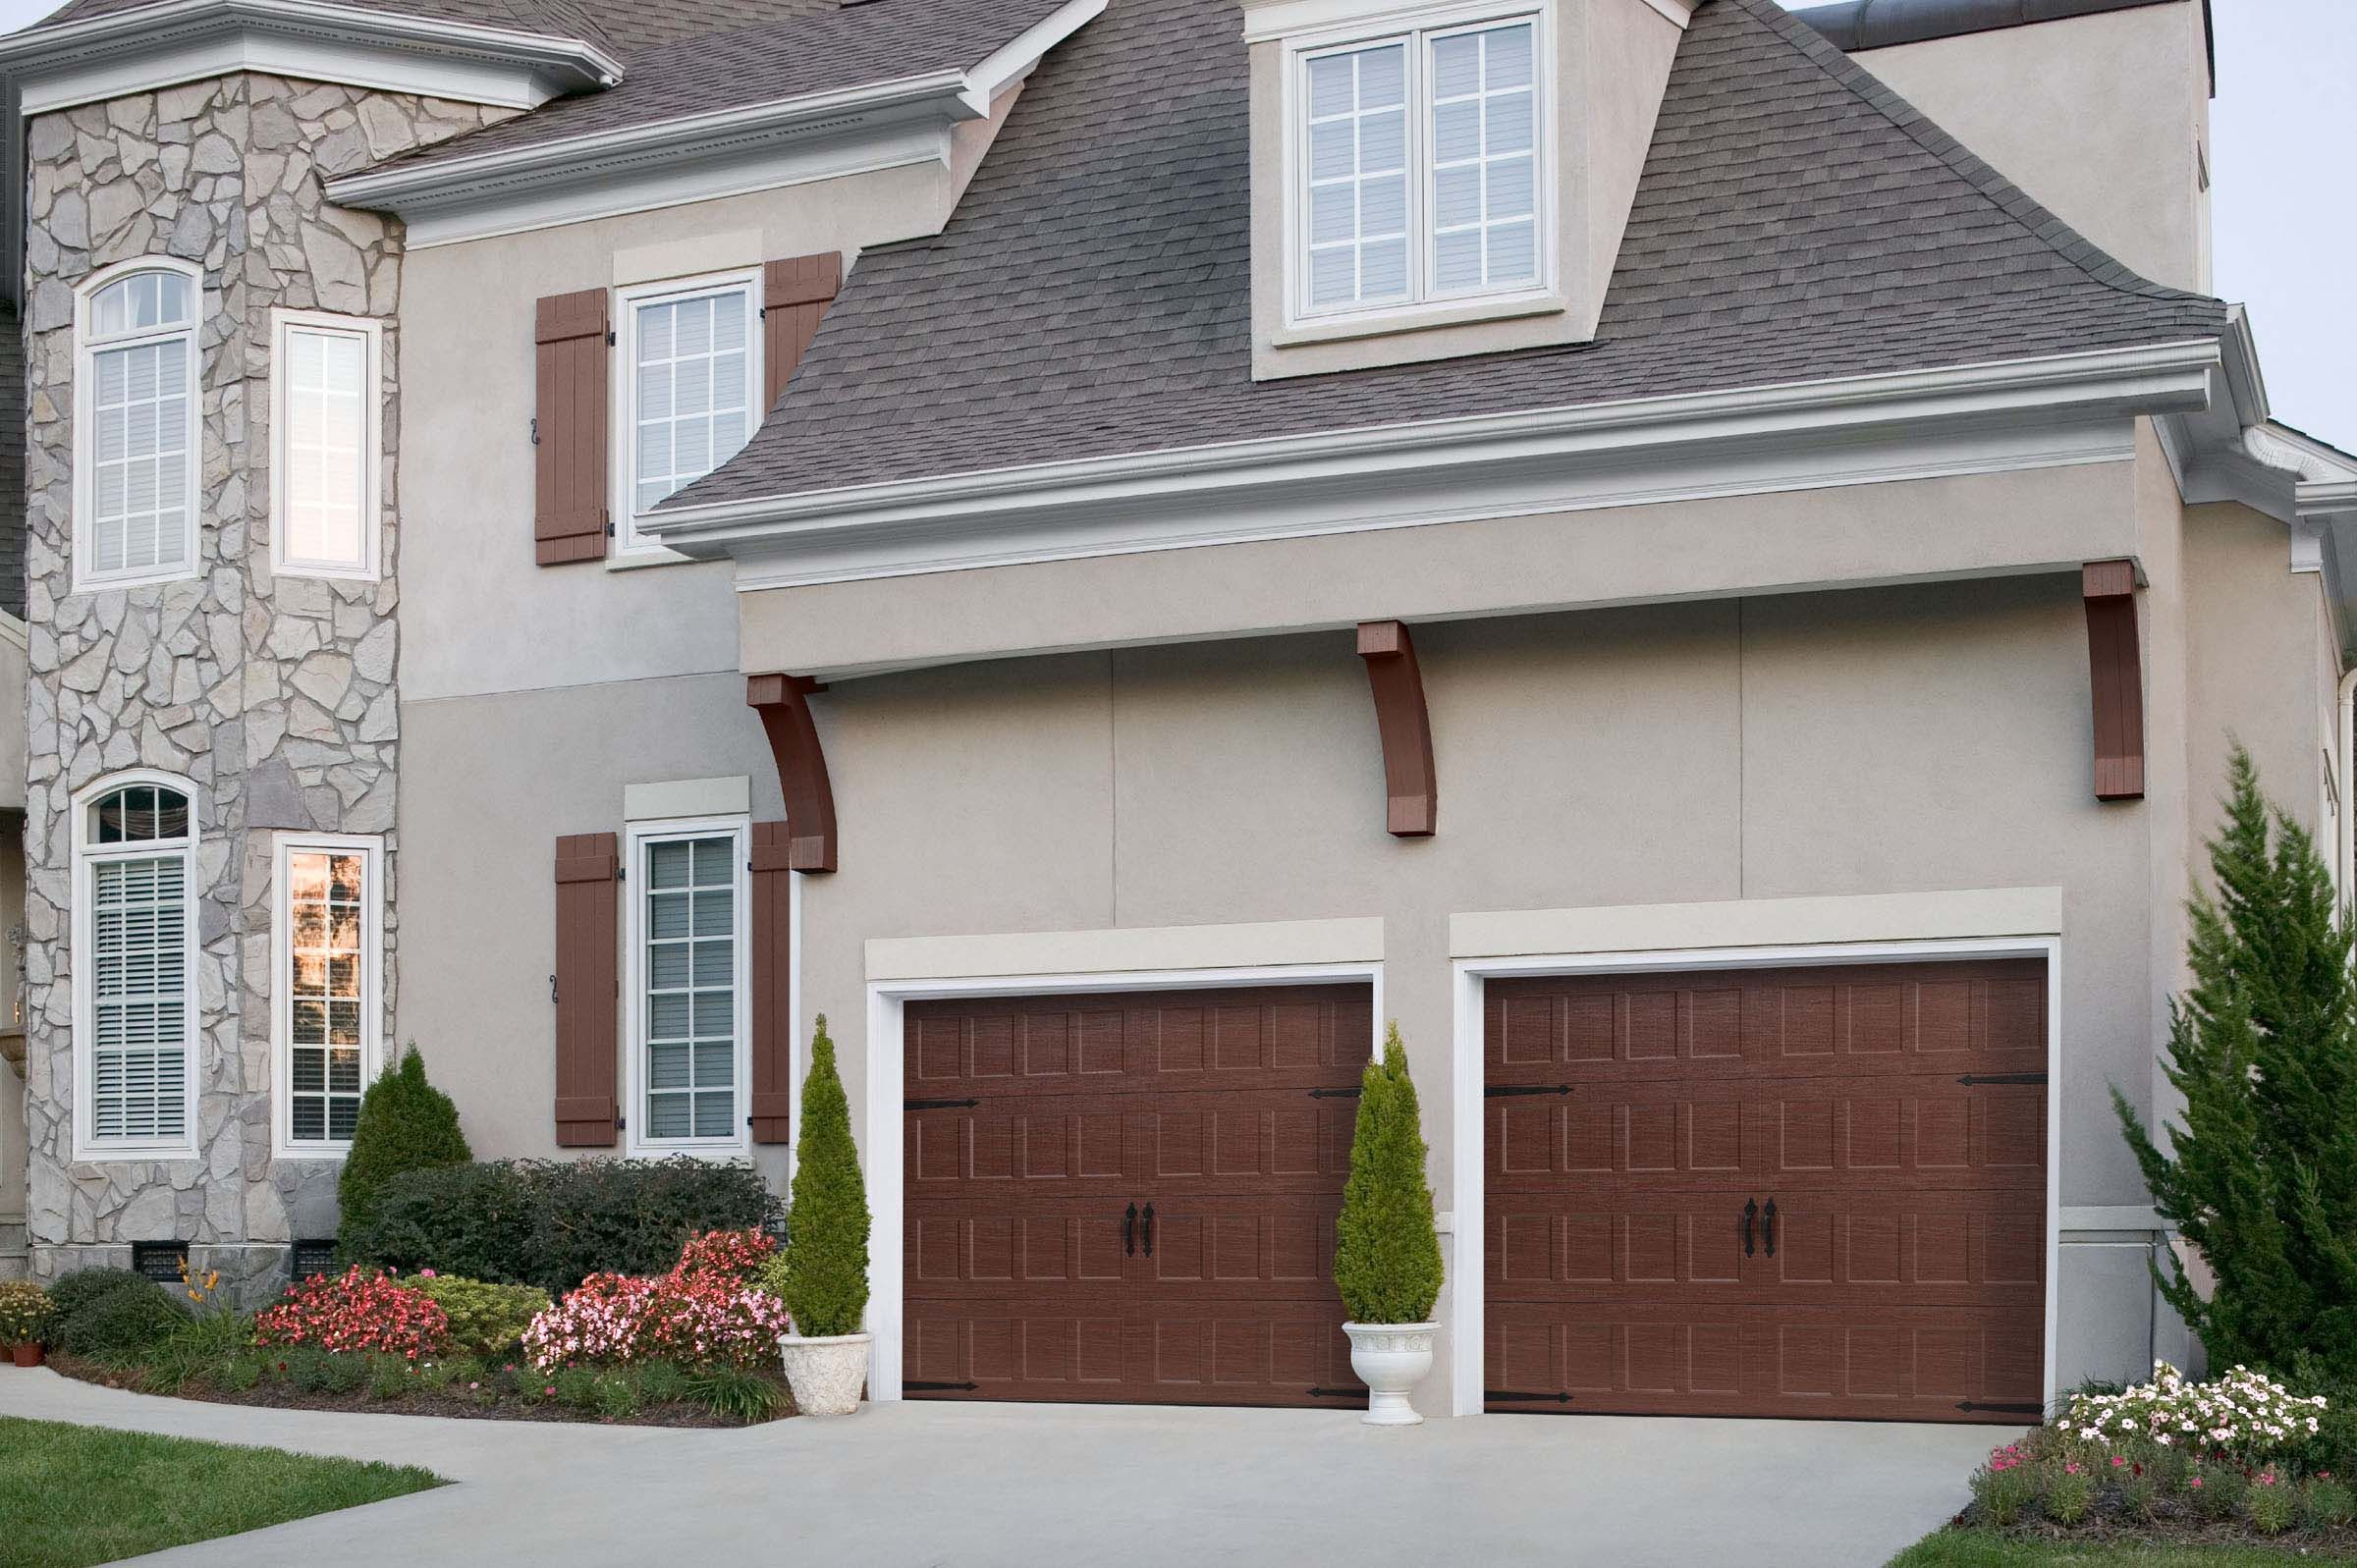 House with wood garage door - Find This Pin And More On Amarr Steel Carriage House Garage Doors